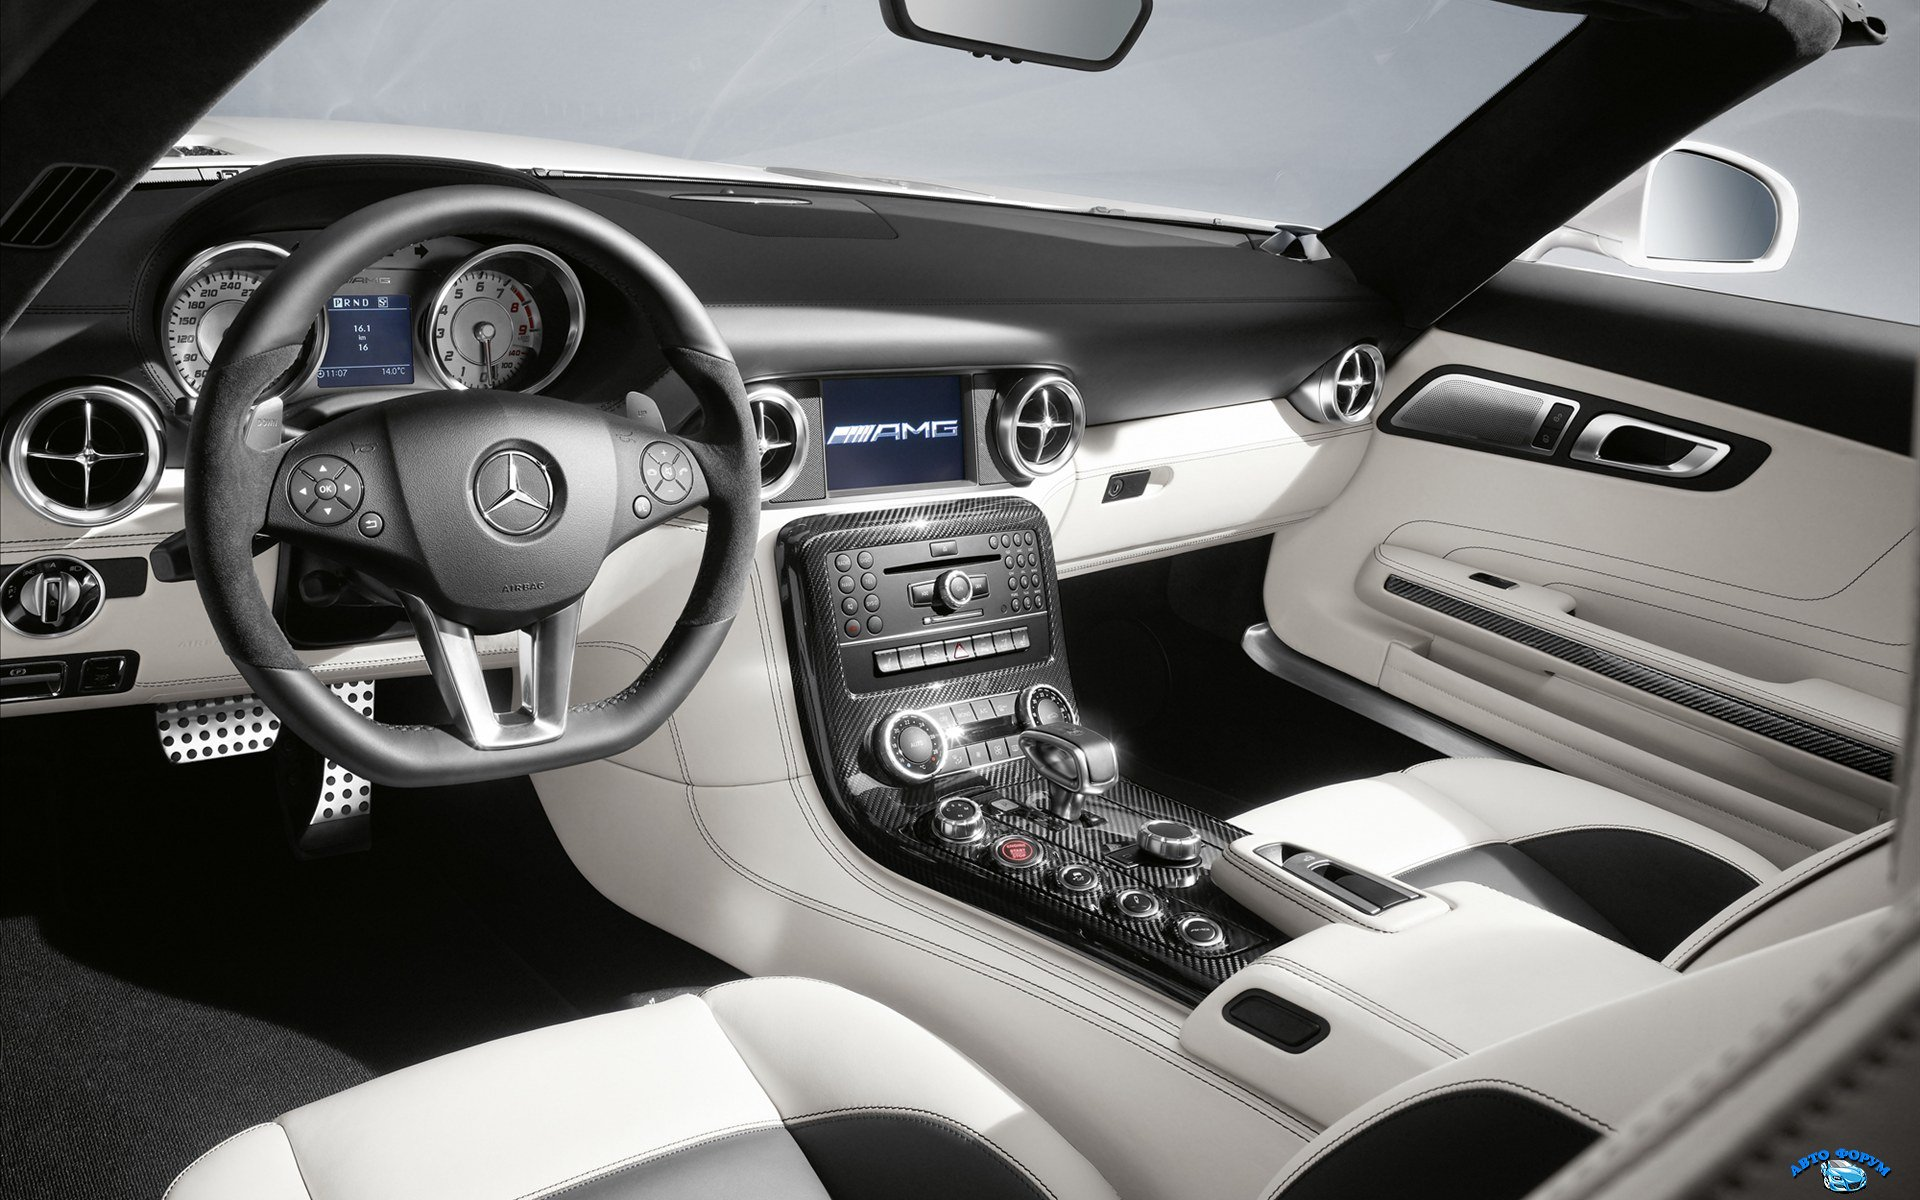 Mercedes-Benz-SLS-AMG-Roadster-2011-widescreen-19.jpg